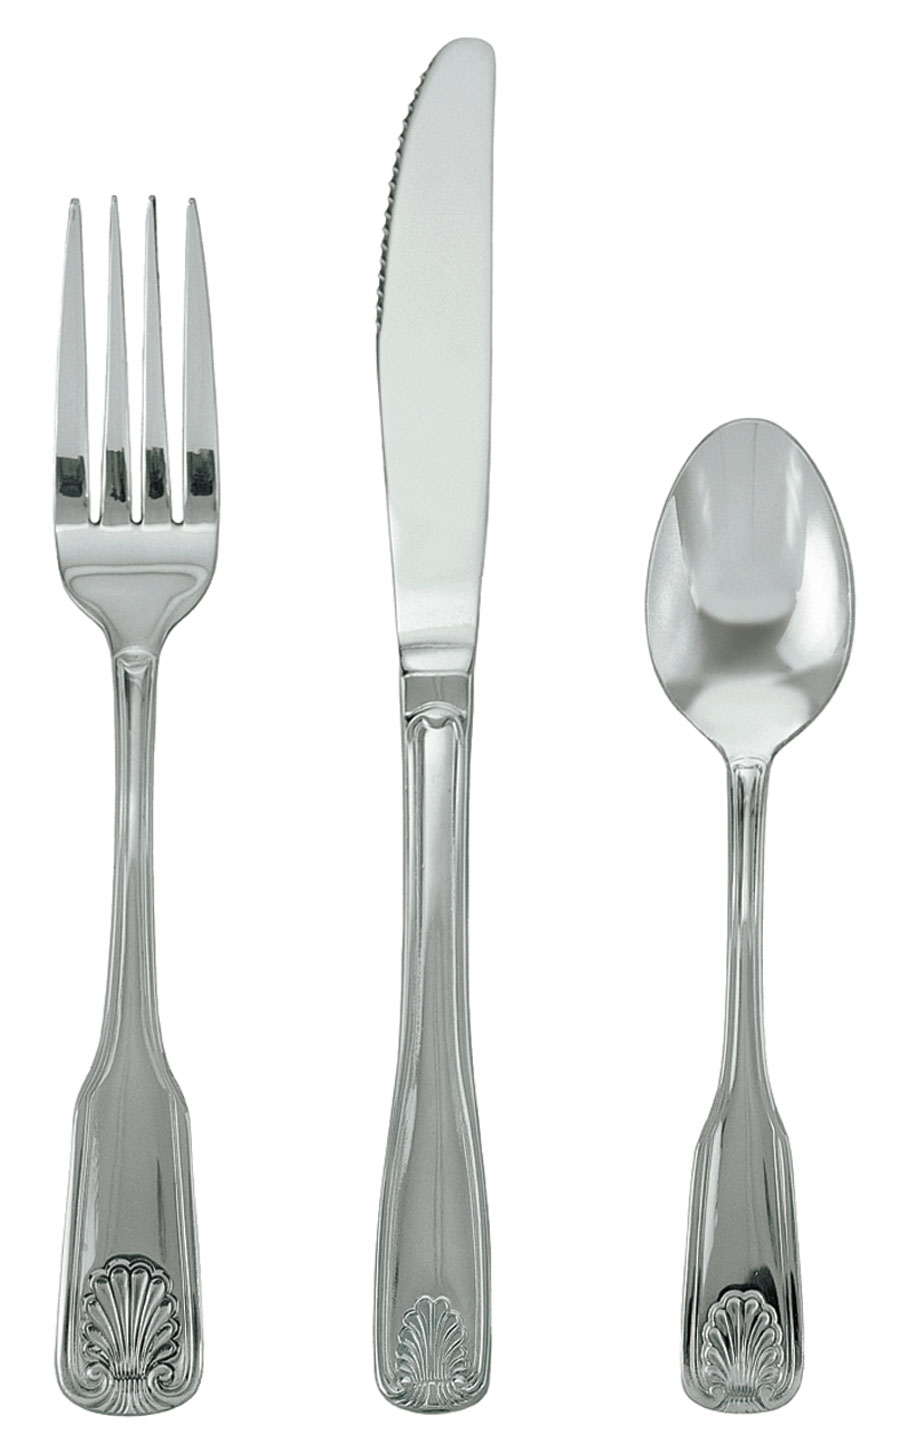 Update International SH/CP-506 Clear Pack Shelley Salad Forks 18/0 Stainless Steel -1 doz